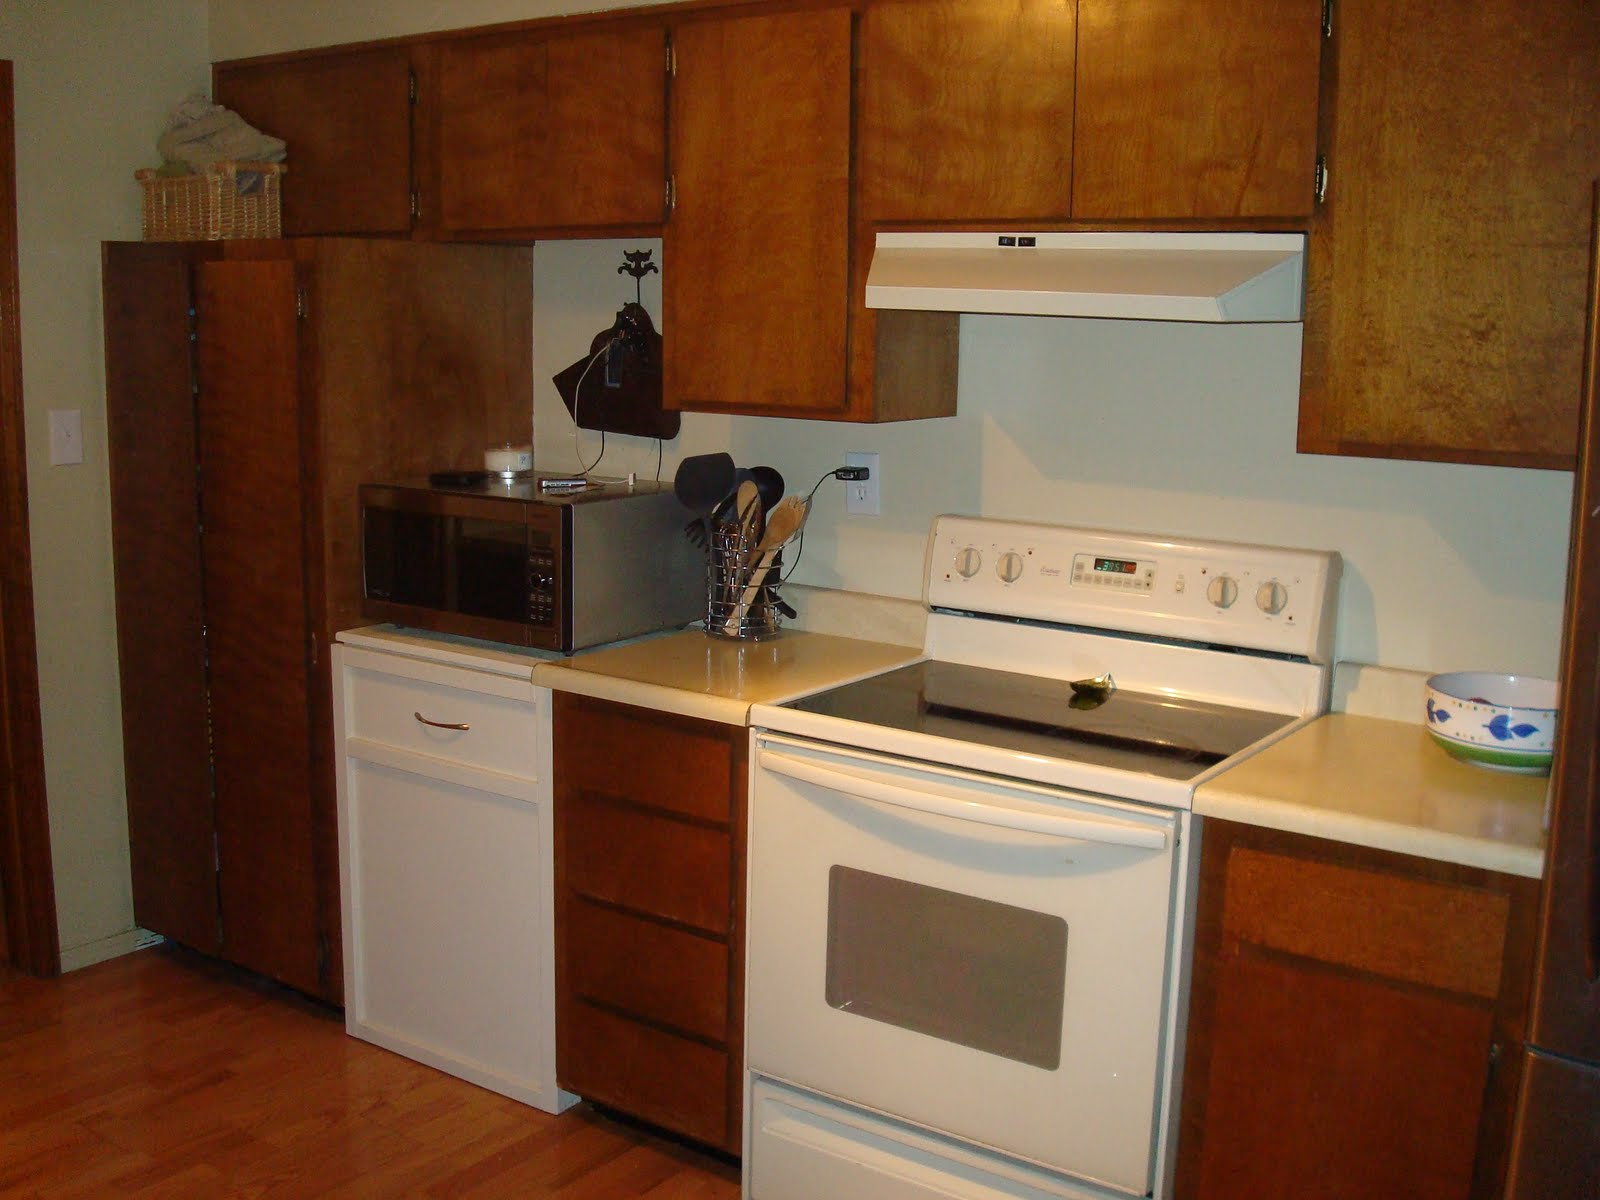 Just me low budget kitchen remodel for Kitchen remodels on a budget photos